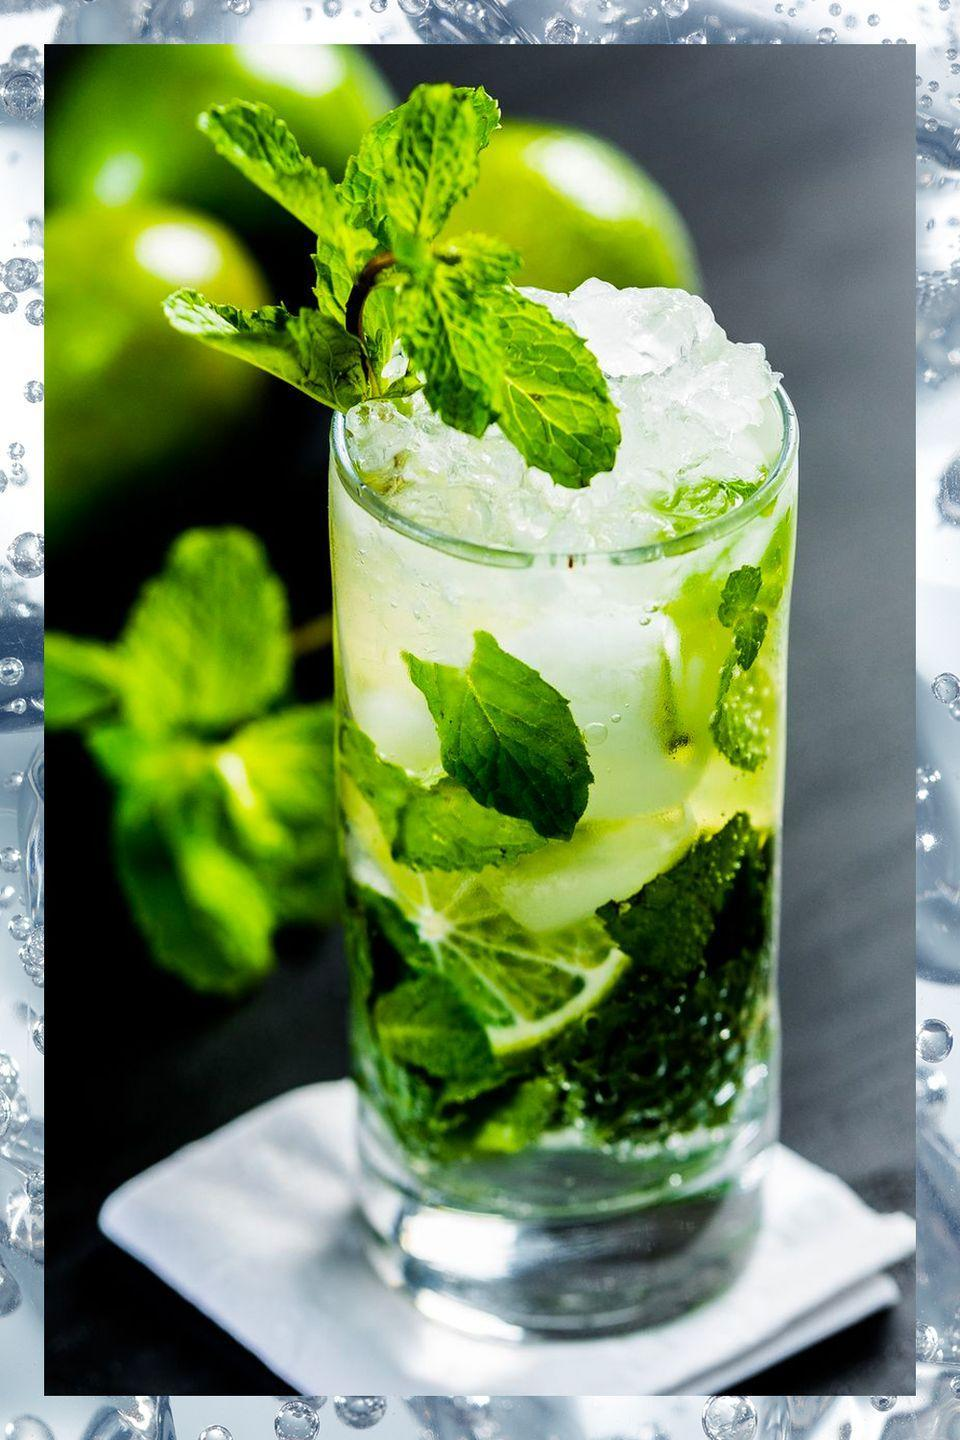 """<p>Originating in Cuba, this refreshing rum-based sip is filled with mint and lime—a perfect combination for sipping by the pool or beach. If you're craving a little literary cred, the mojito was also said to be a favorite of author <a href=""""http://www.townandcountrymag.com/leisure/arts-and-culture/a31827643/hemingway-quarantine-wife-mistress/"""" rel=""""nofollow noopener"""" target=""""_blank"""" data-ylk=""""slk:Ernest Hemingway."""" class=""""link rapid-noclick-resp"""">Ernest Hemingway. </a></p><p>- 3 mint leaves<br>- 2 oz white rum<br>- .75 oz lime juice<br>- .5 oz simple syrup</p><p><em>Muddle mint into a shaker tin, then add ice and all other ingredients. Shake to chill and strain into a highball glass with ice. Top with club soda if desired and garnish with mint. </em></p><p><strong>More:</strong><a href=""""http://www.townandcountrymag.com/leisure/drinks/g2737/rum-cocktails/"""" rel=""""nofollow noopener"""" target=""""_blank"""" data-ylk=""""slk:Delicious Rum Cocktail Recipes"""" class=""""link rapid-noclick-resp""""> Delicious Rum Cocktail Recipes</a><br></p>"""